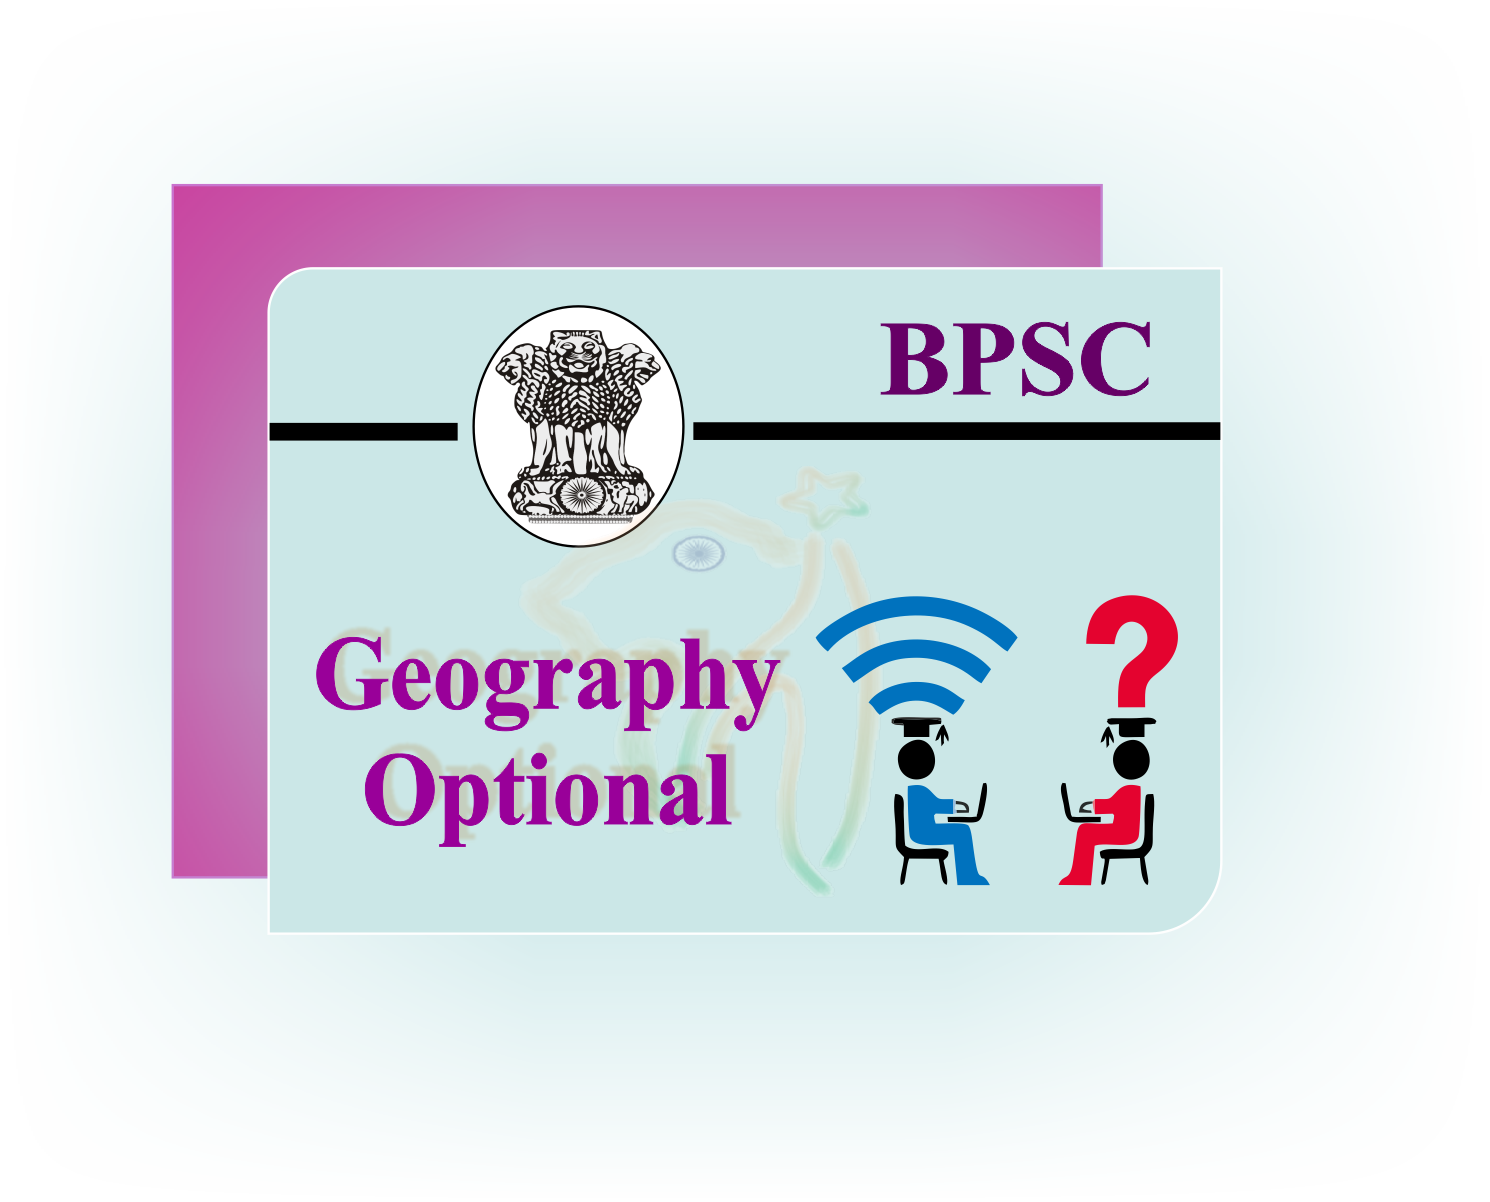 BPSC Geography Optional